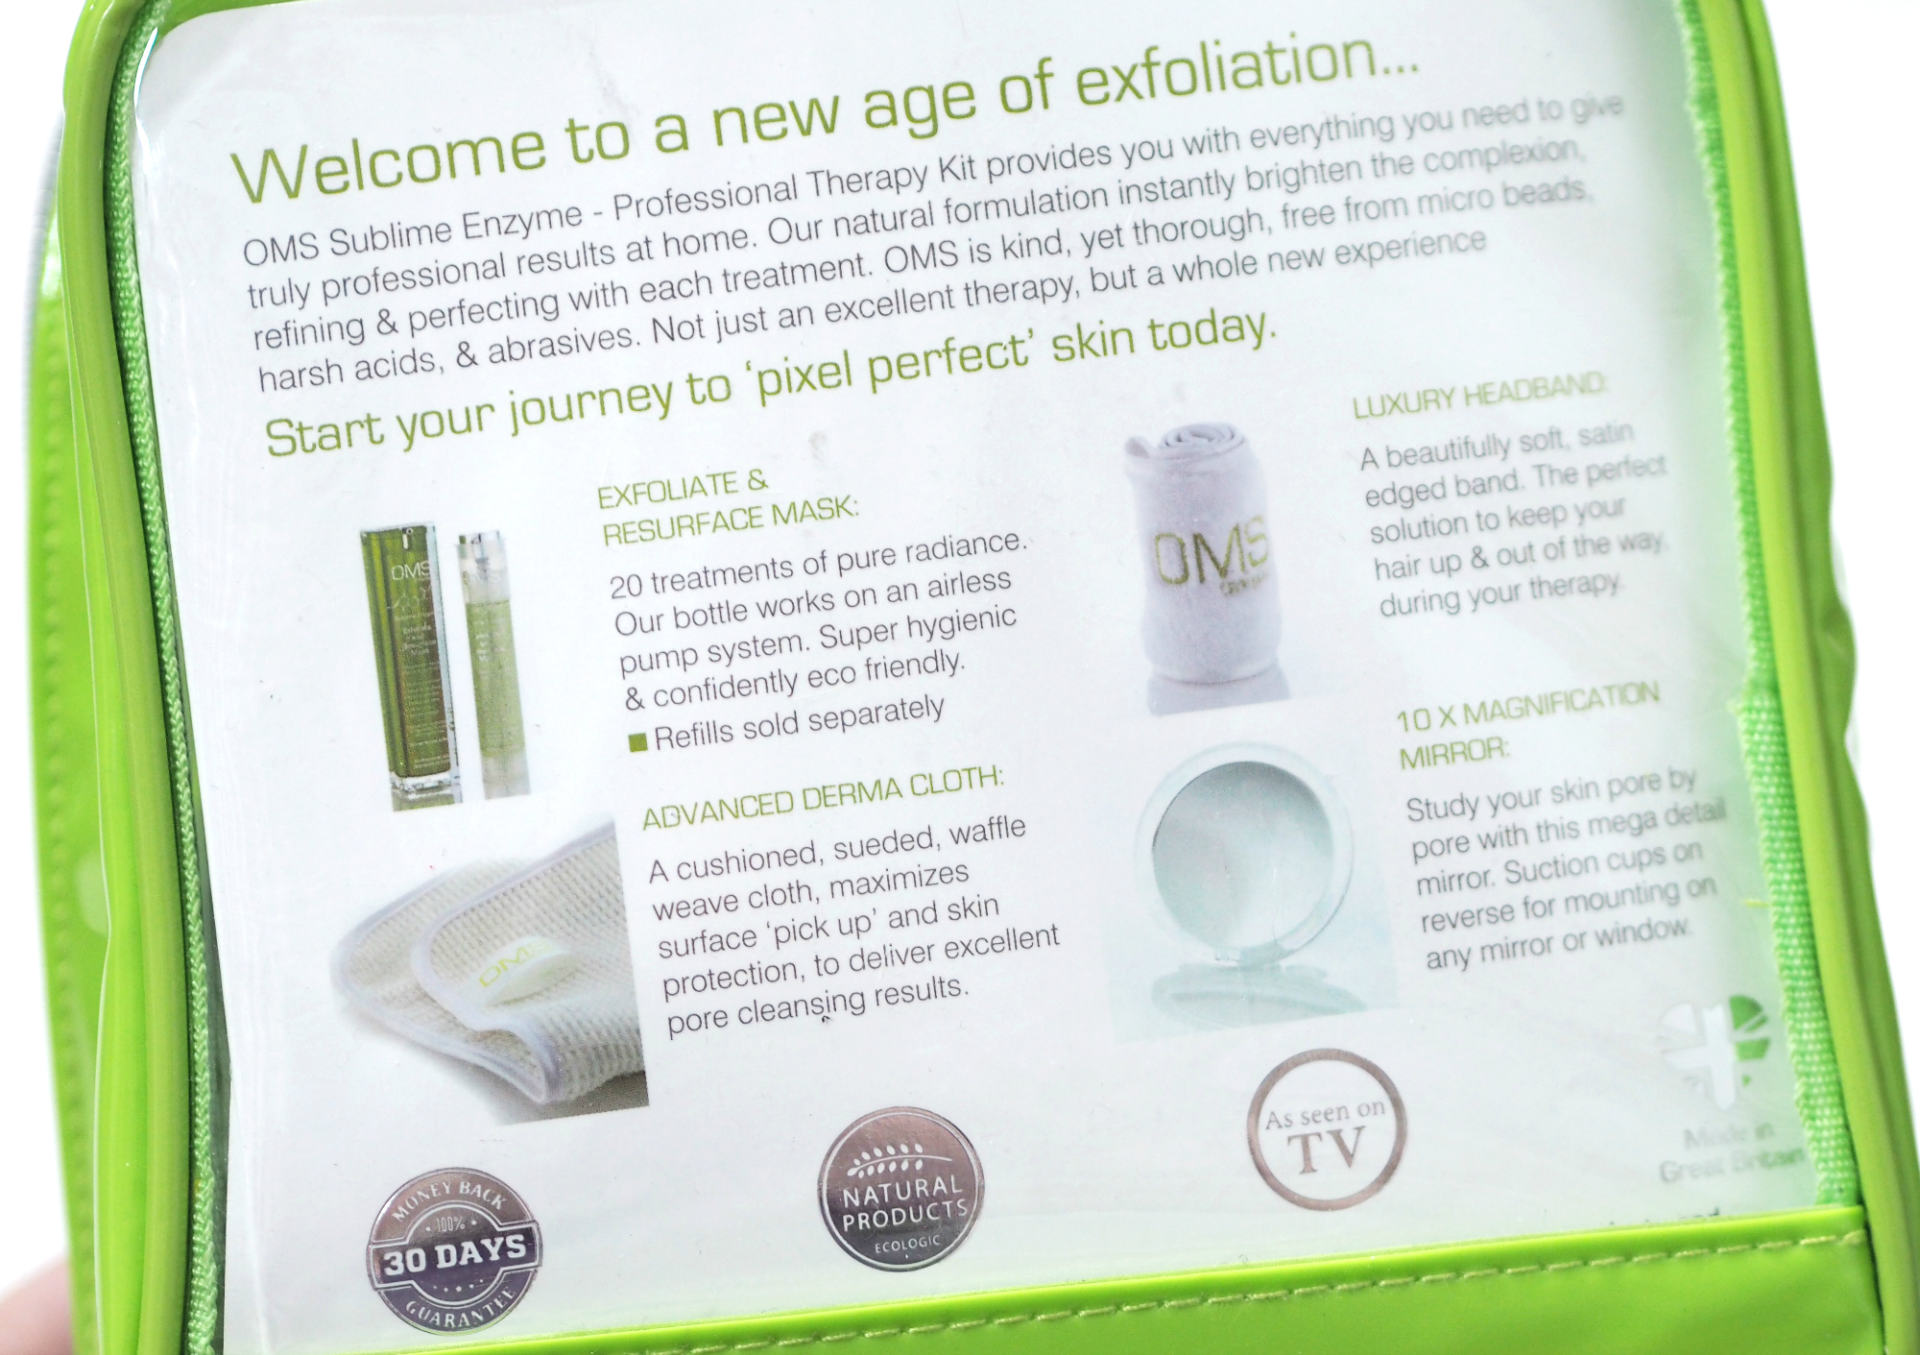 OhMySkin Sublime Enzyme Exfoliate and Resurface Home Therapy Kit